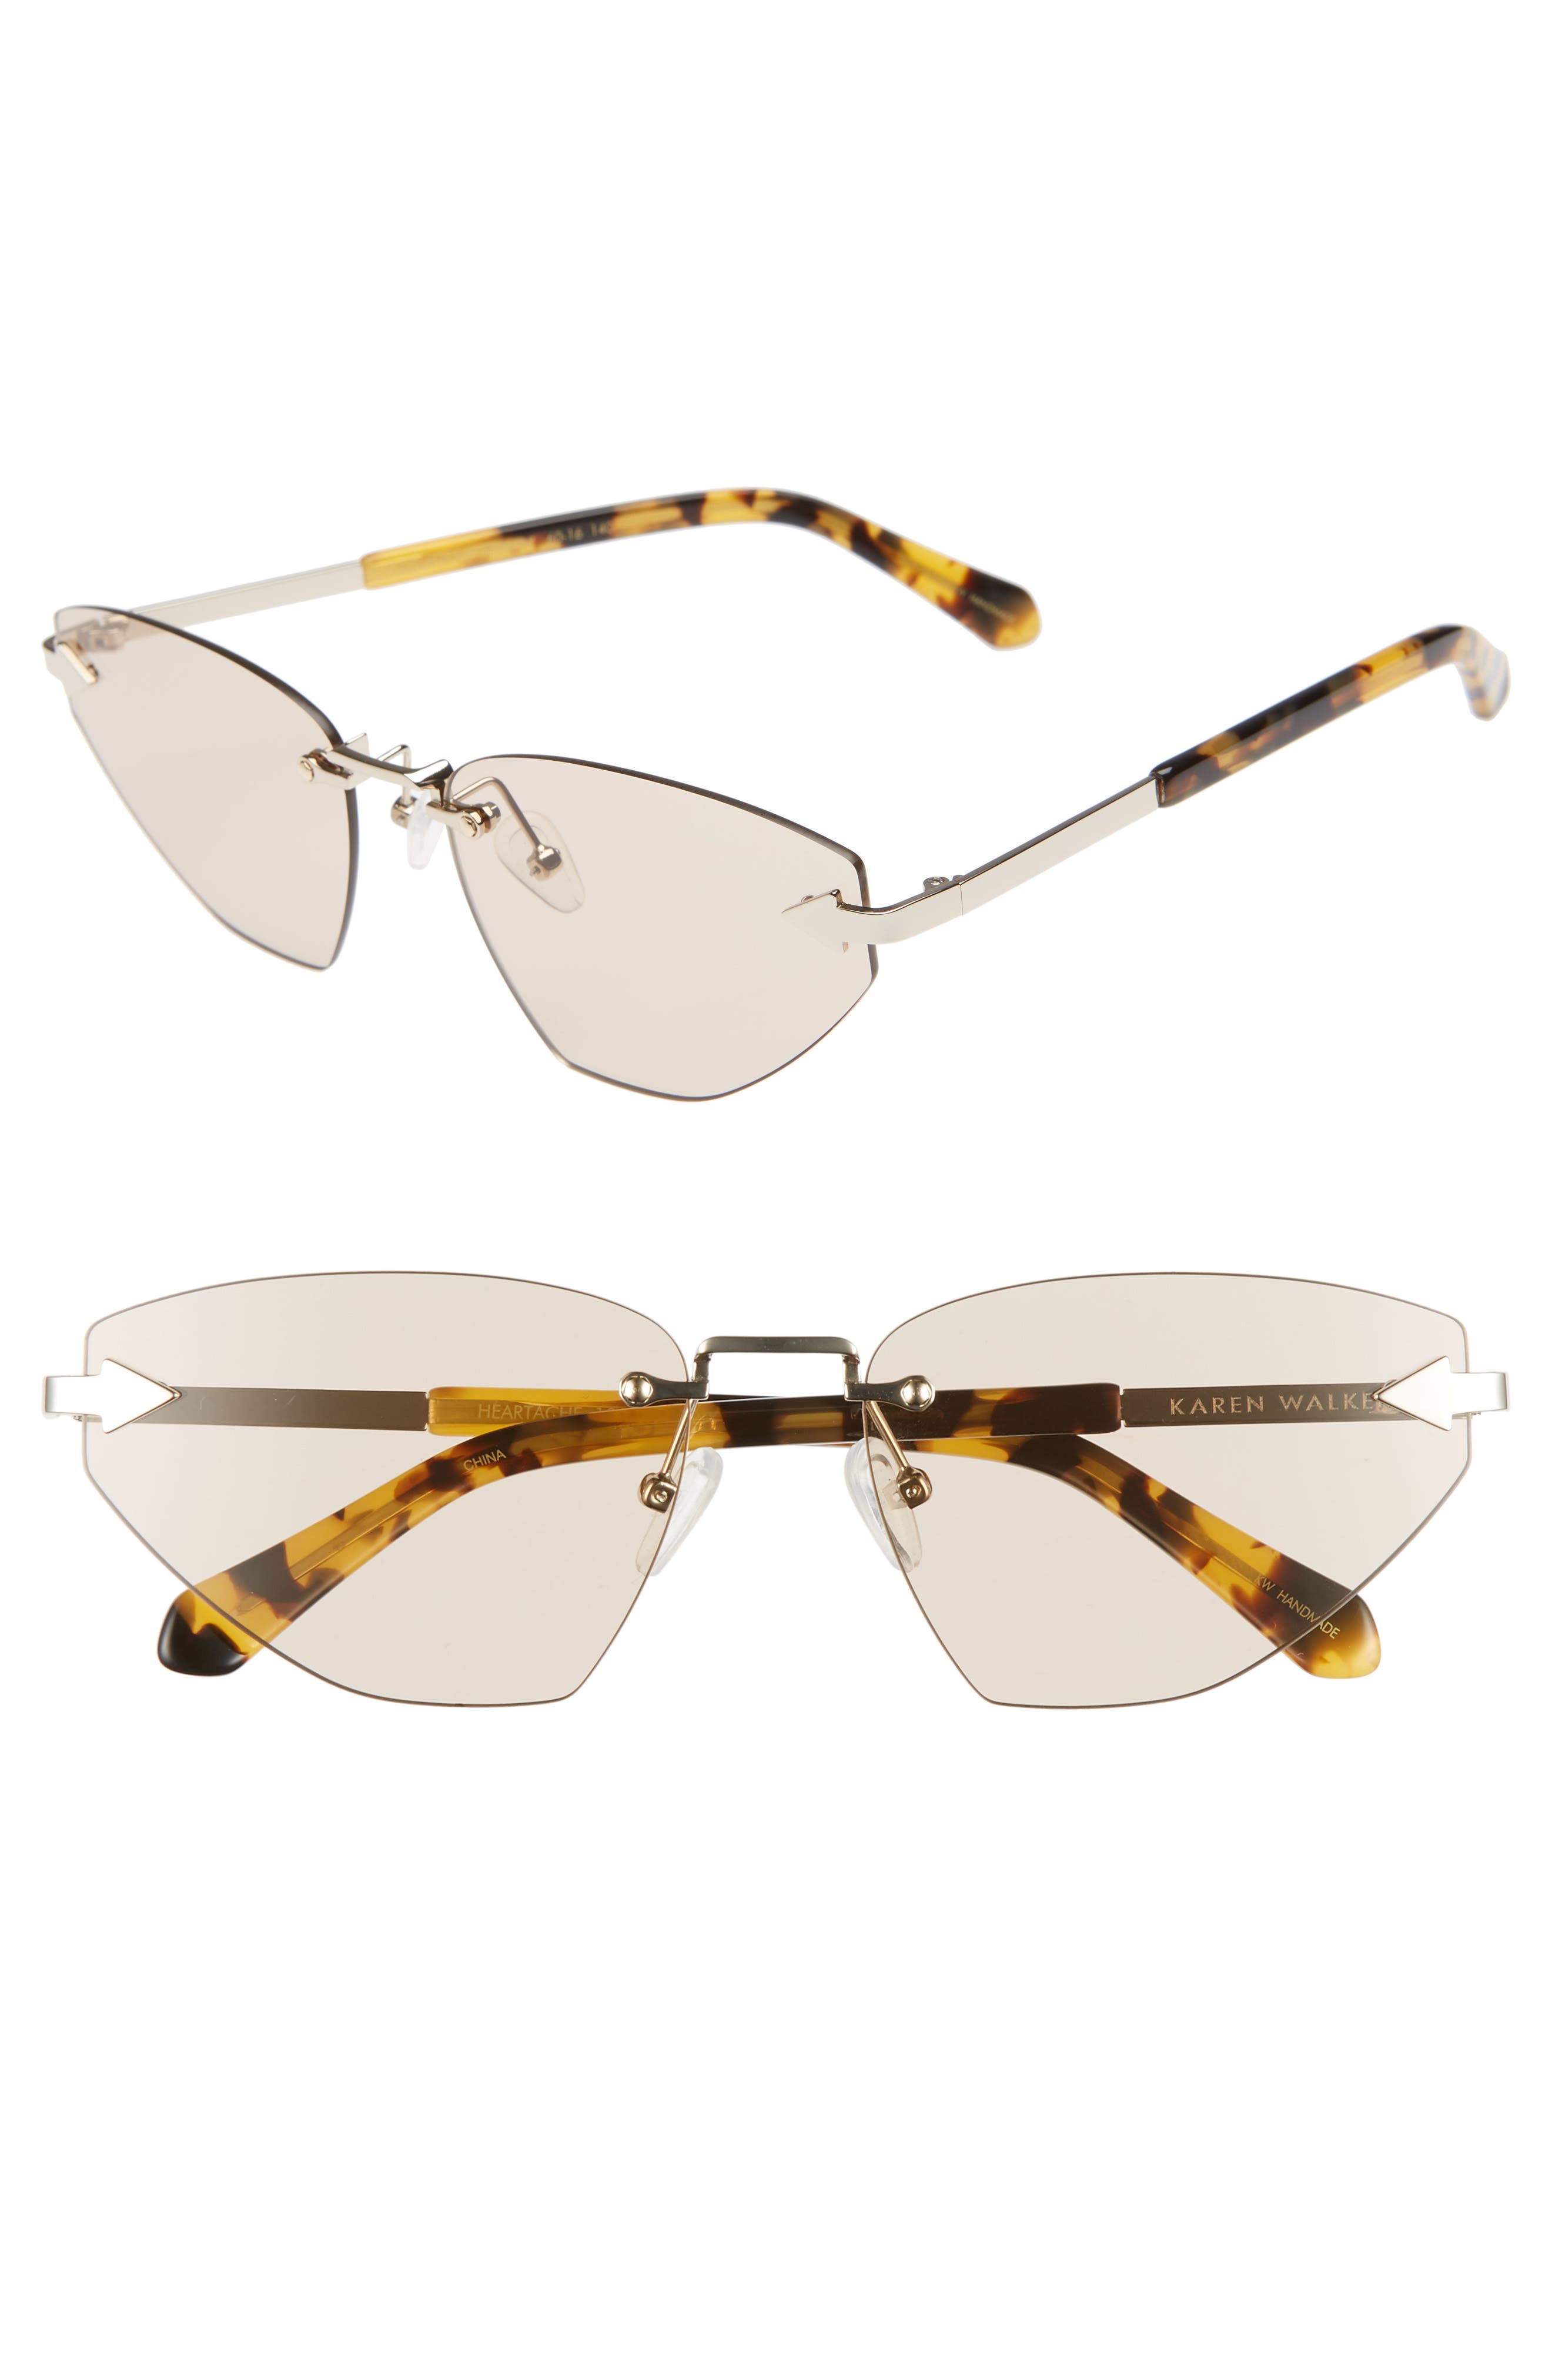 Heartache 60mm Cat Eye Sunglasses,                         Main,                         color, GOLD/ TORTOISE